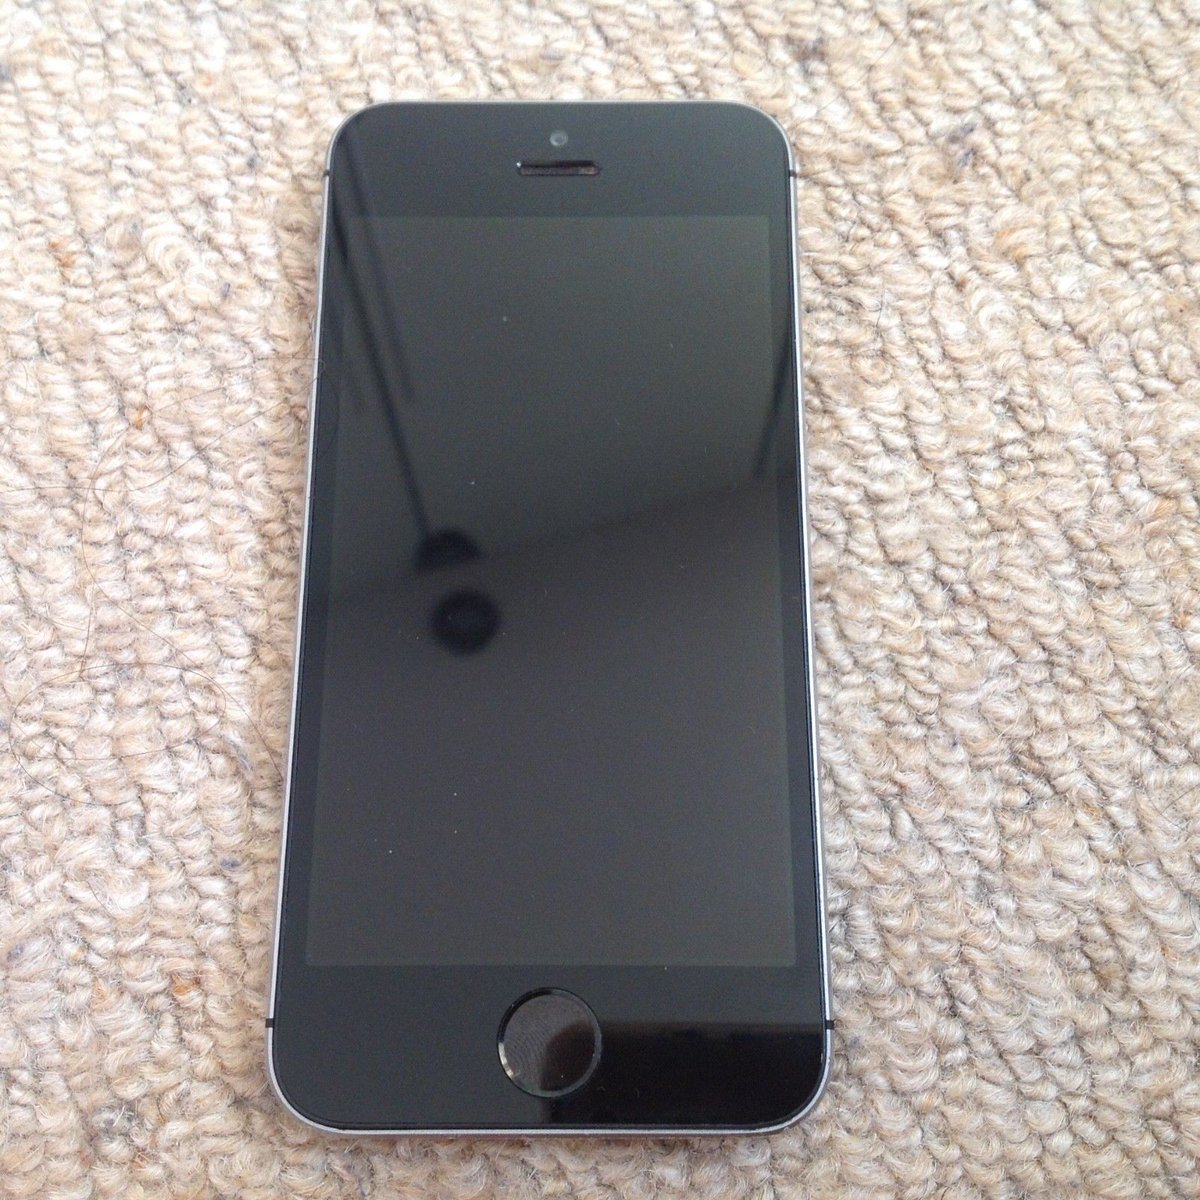 Uk Iphone Sales On Twitter Ebay Apple 5s 16gb Space Gsm 16 Gb Grey Vodafone A1530 Https Tco Nf0hxipffh